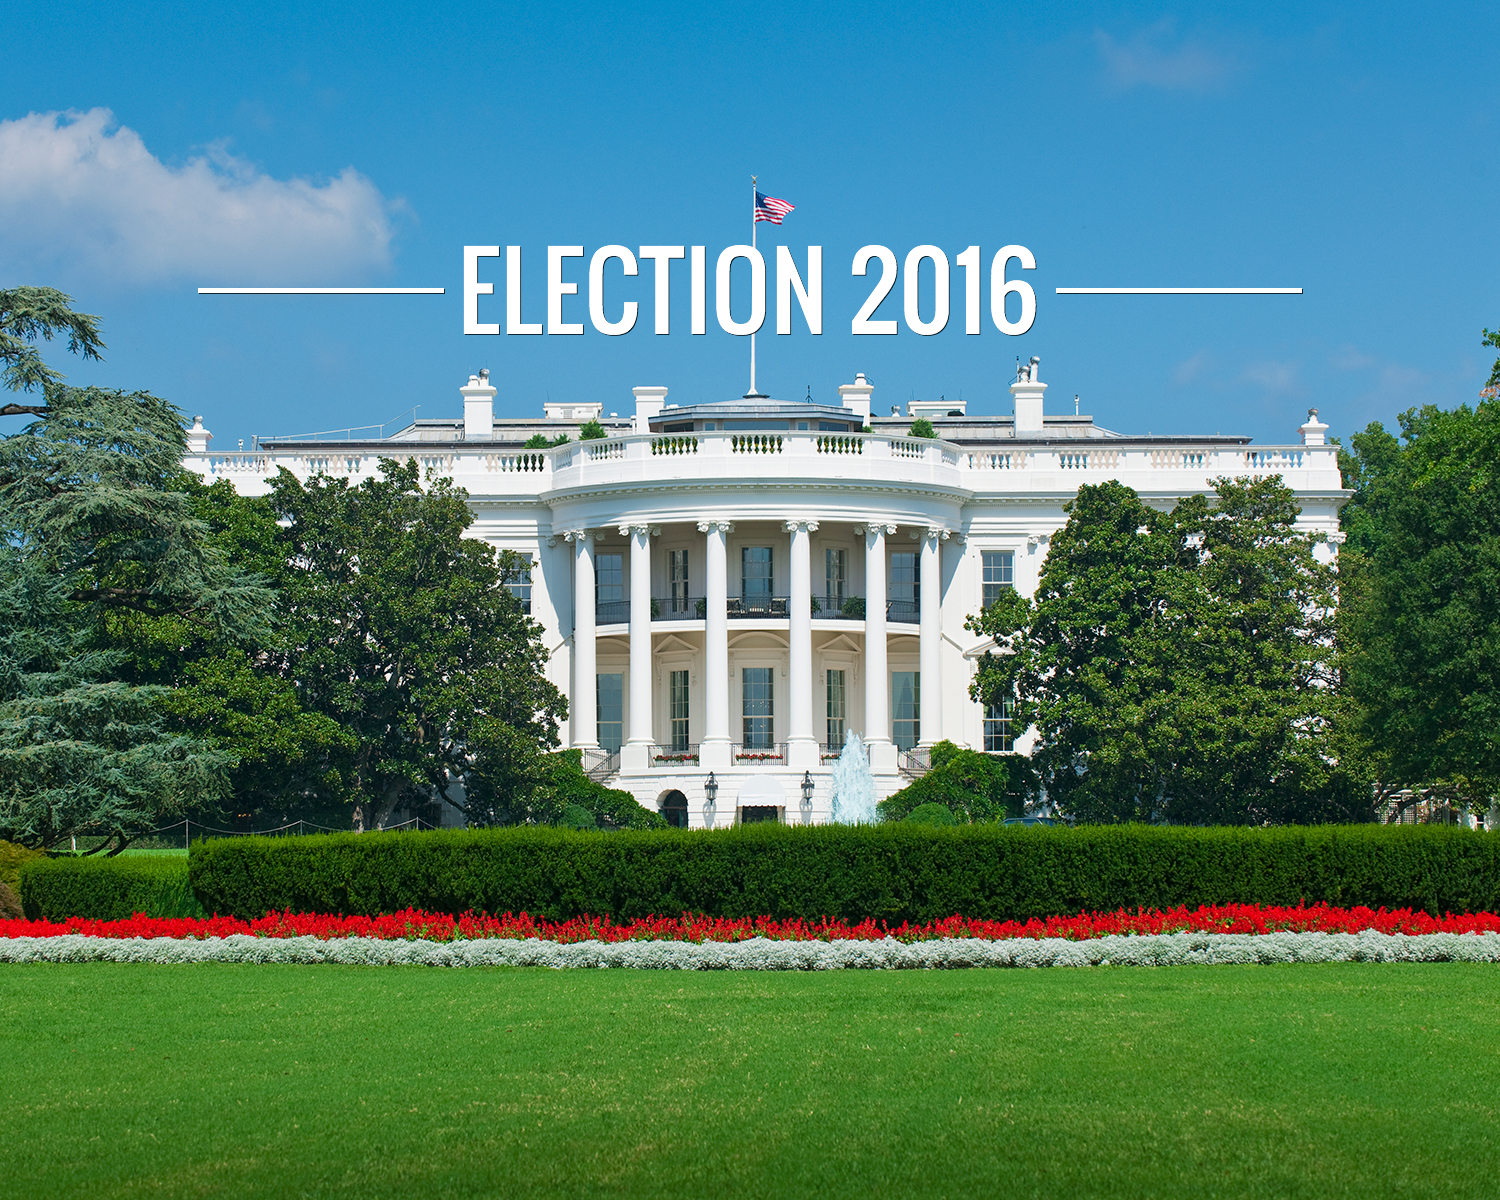 5 Stunning Facts About the 2016 Election in the US